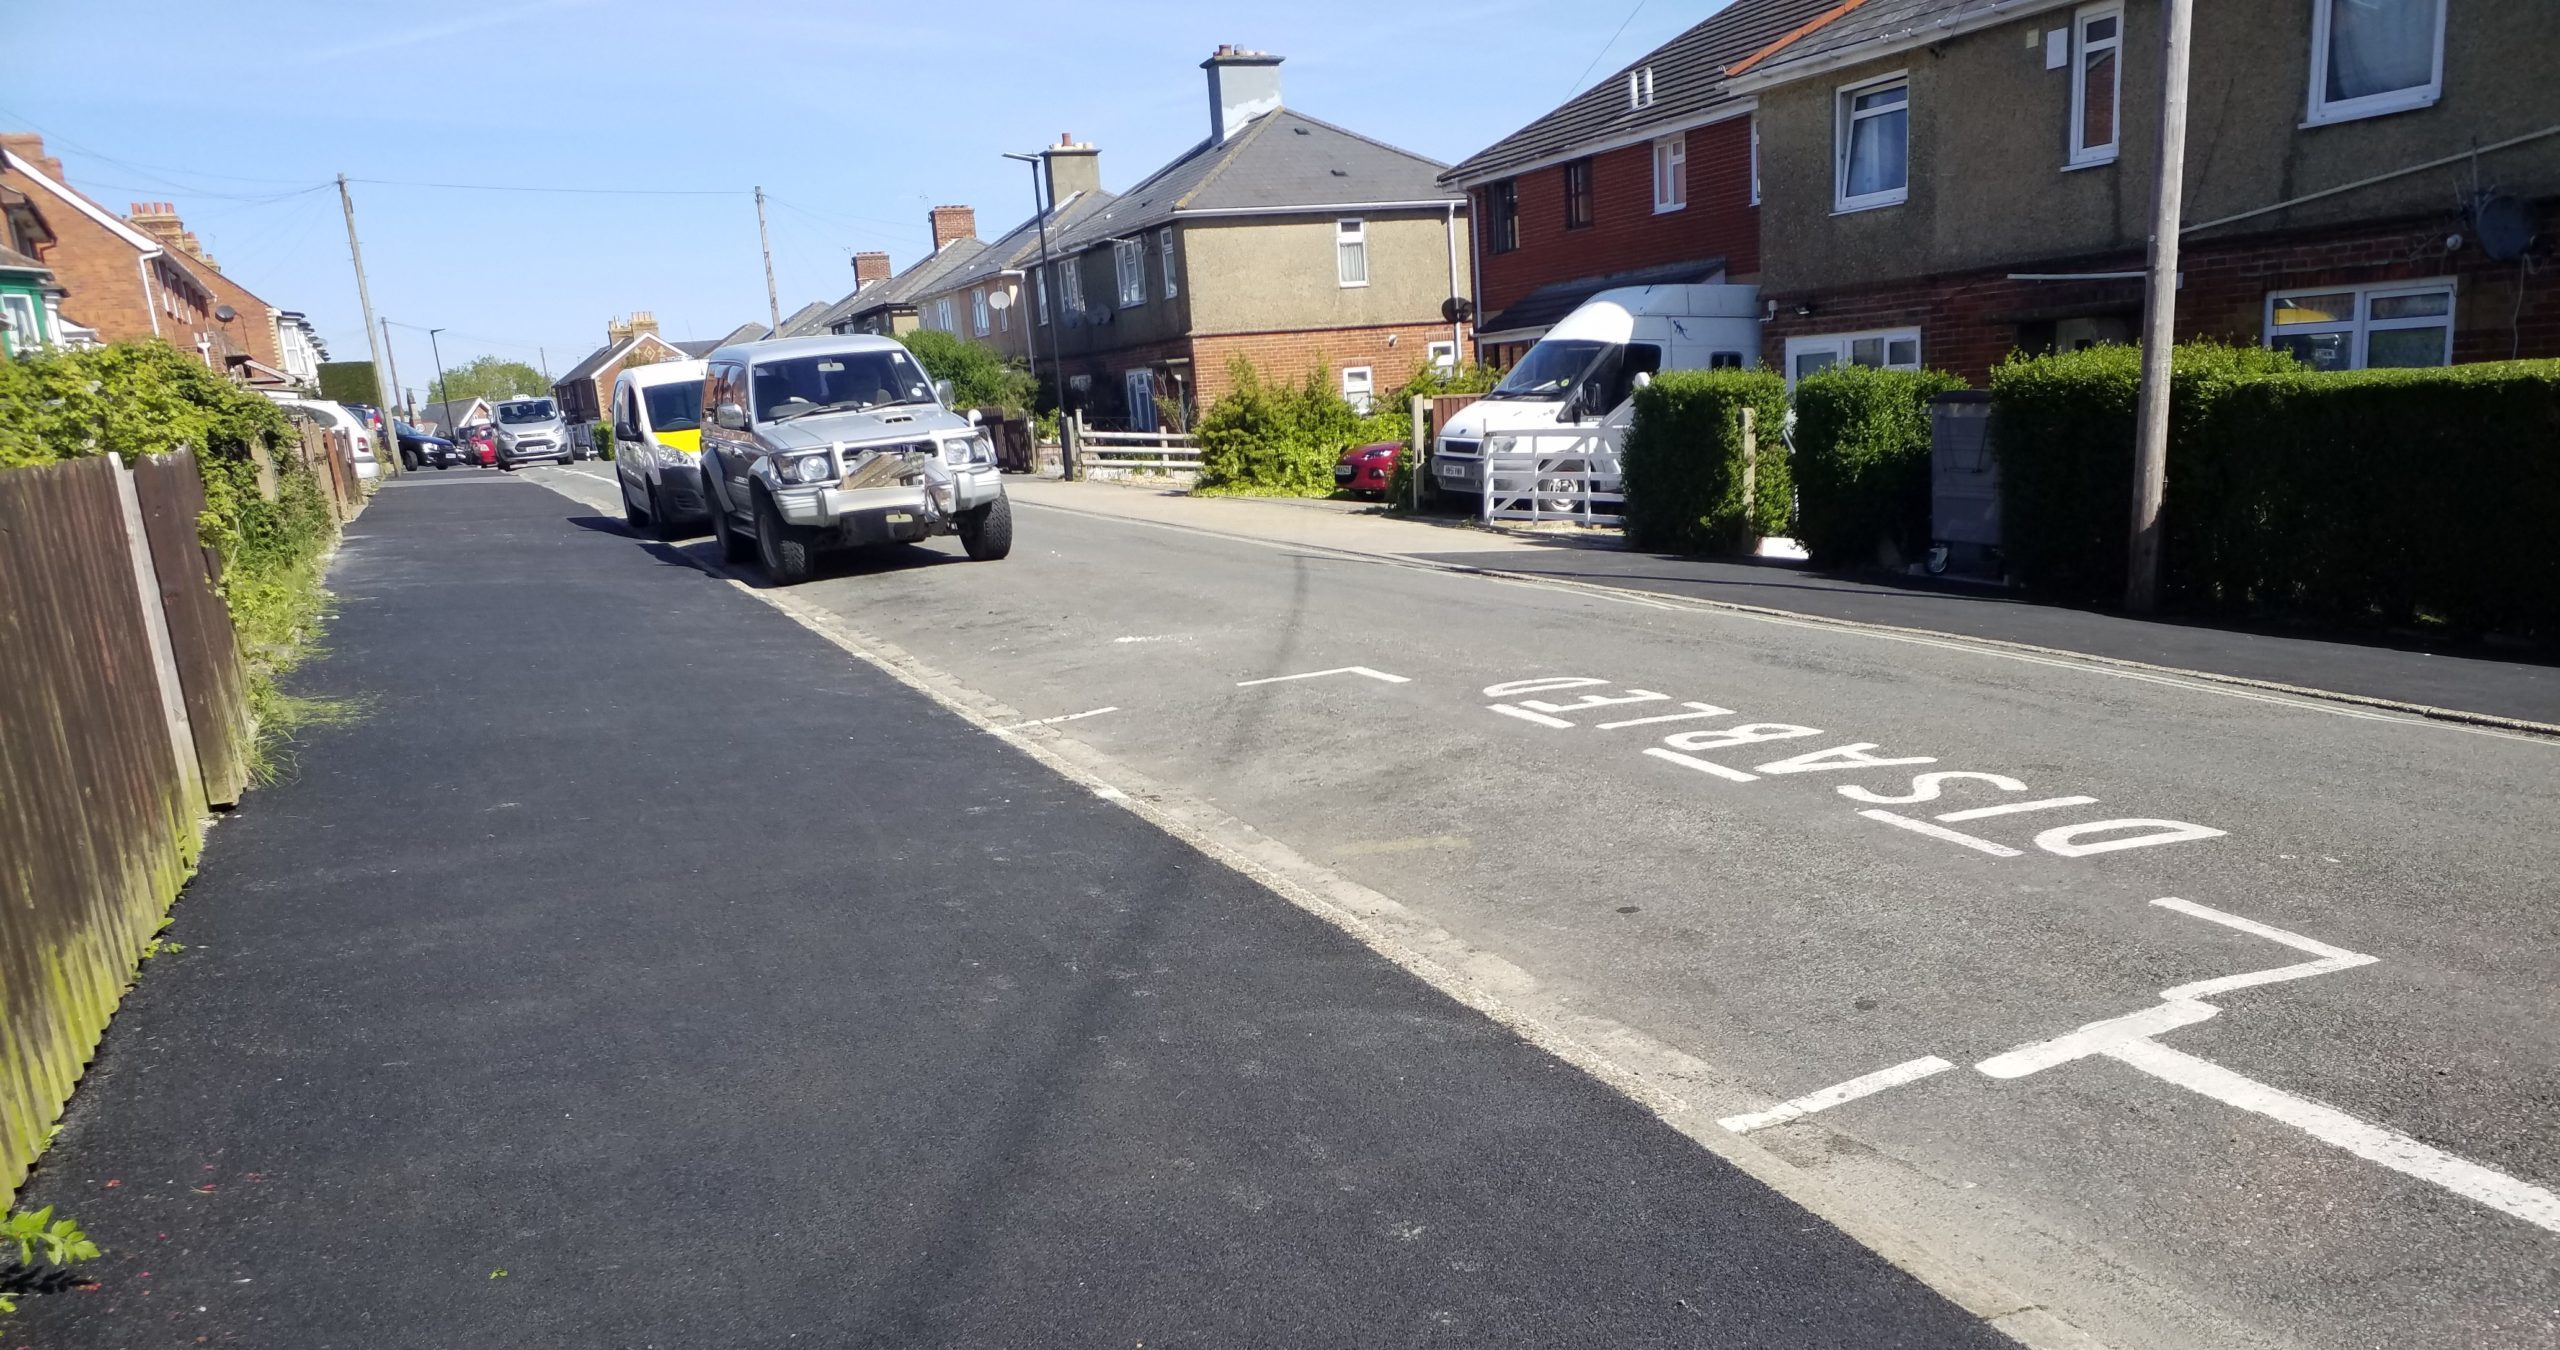 Photo showing disabled bay marked out on the road